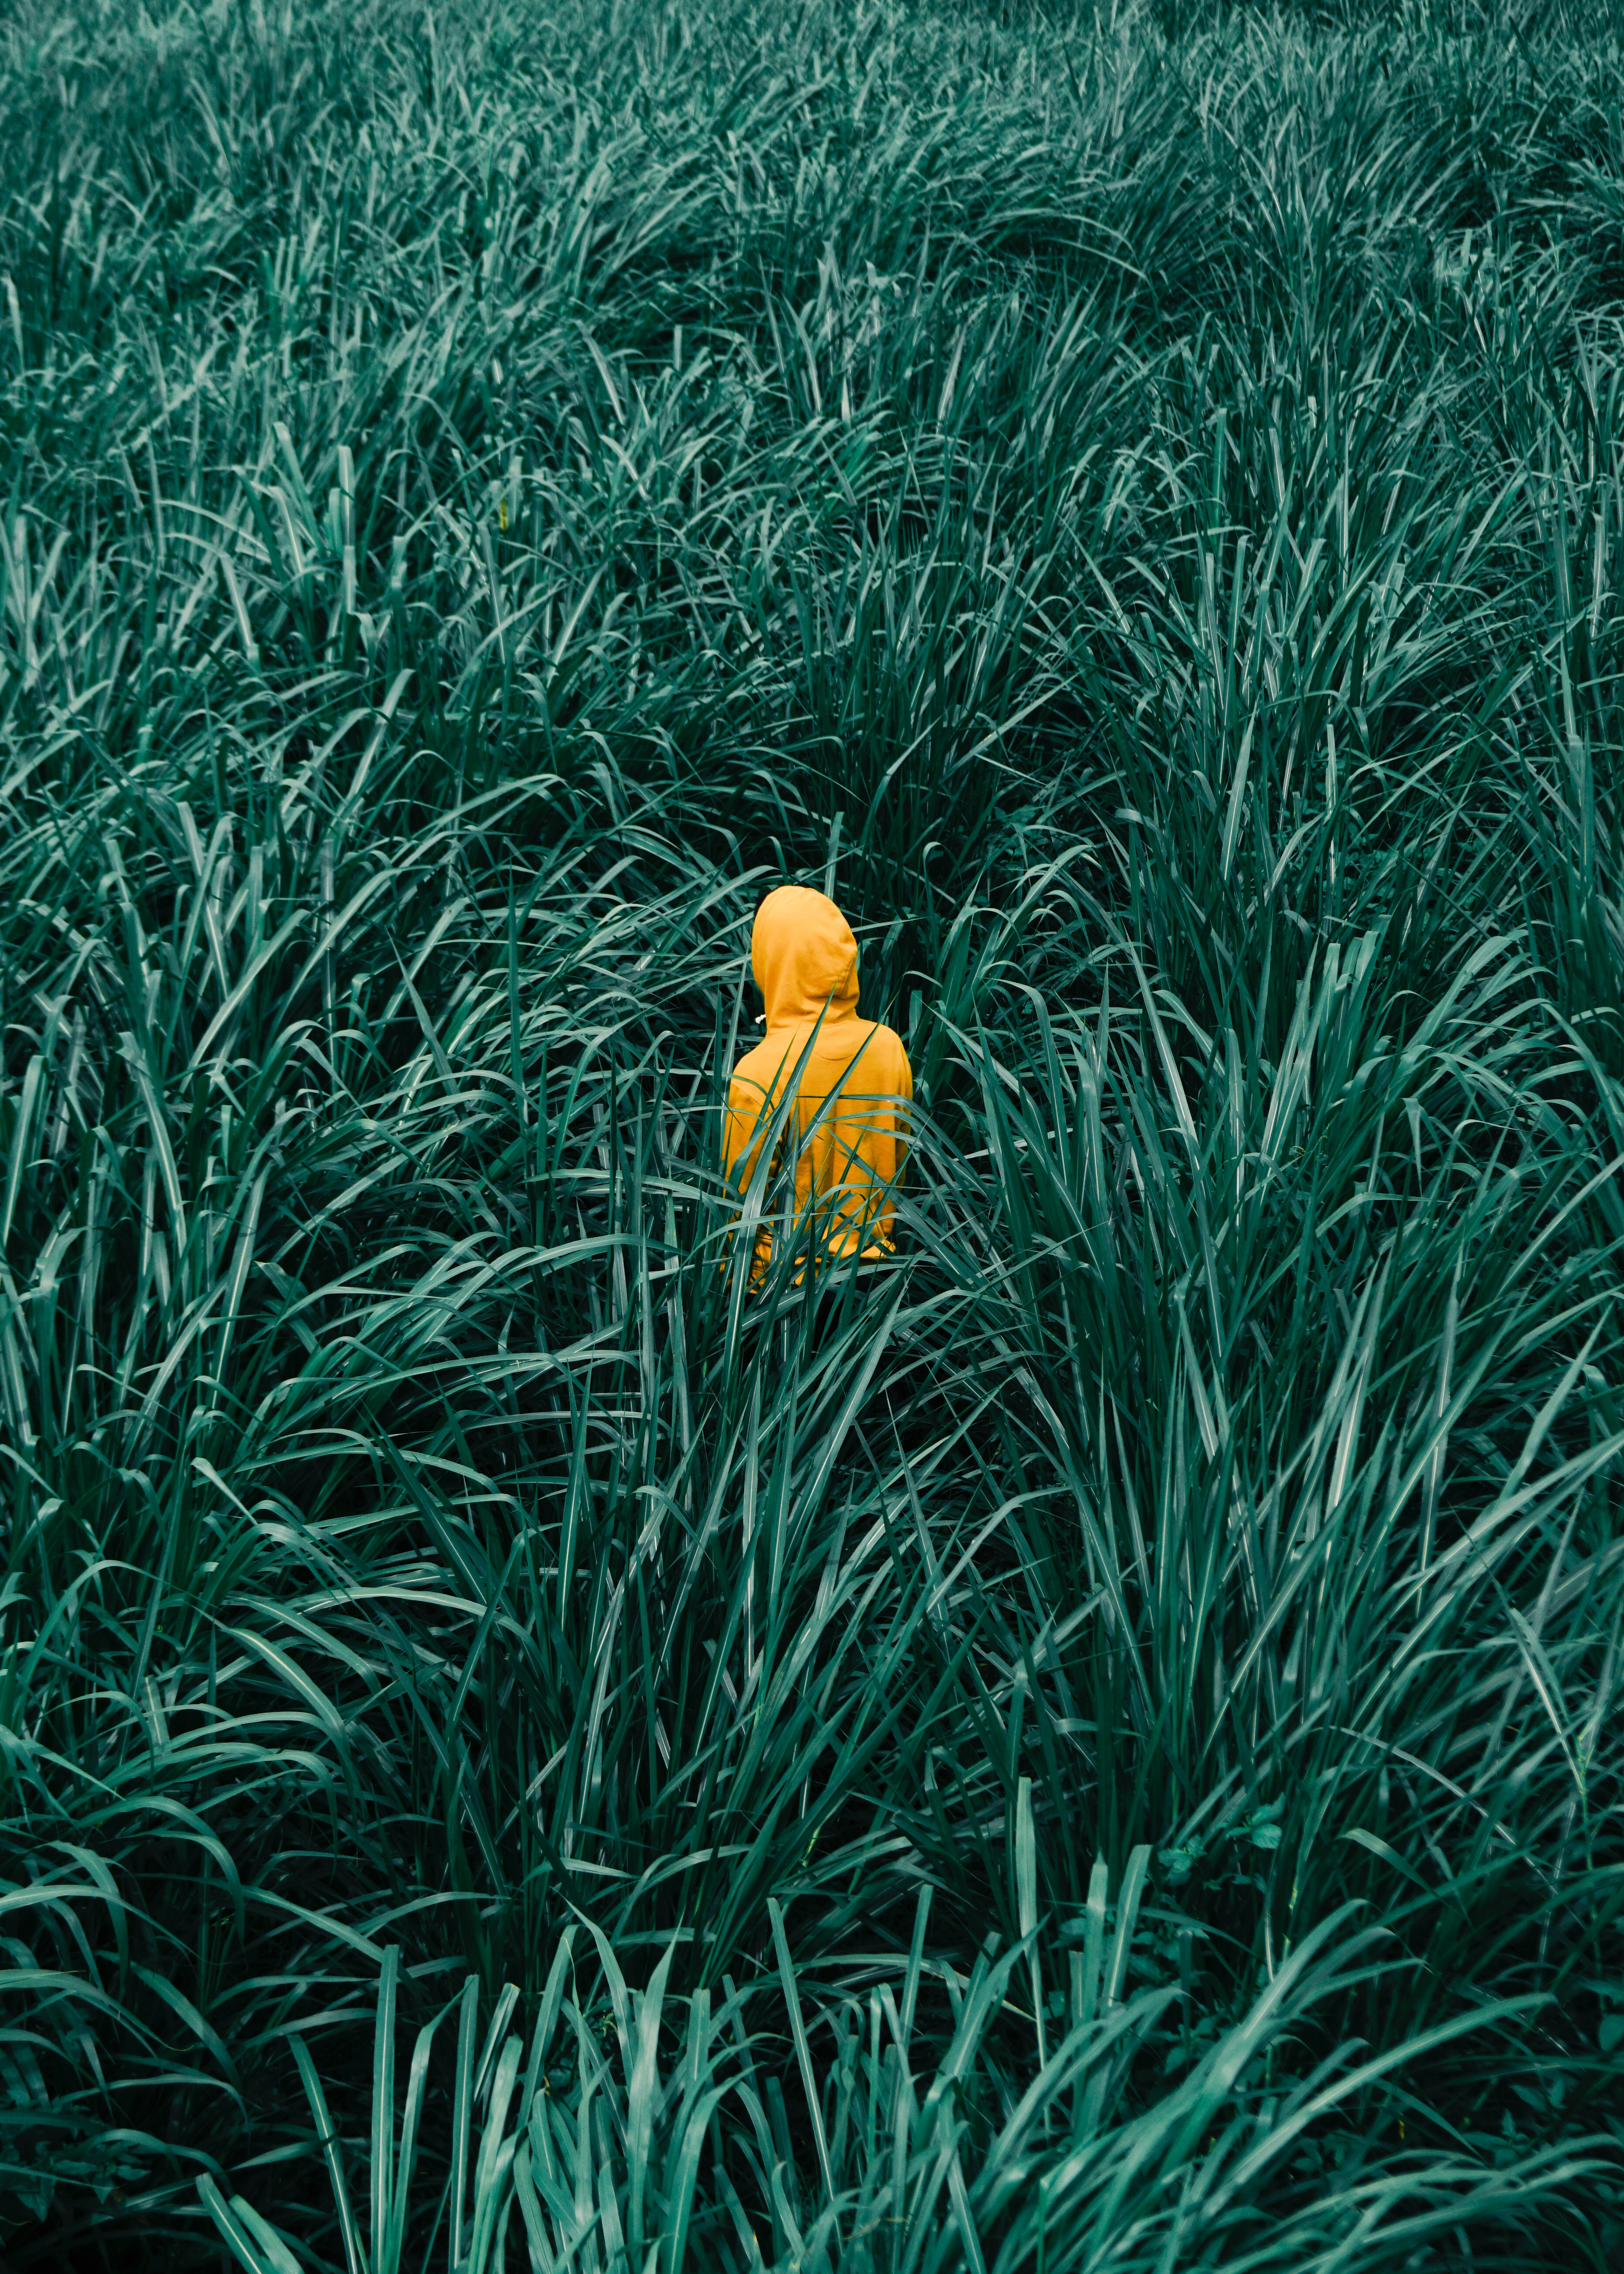 110152 download wallpaper Minimalism, Human, Person, Grass, Stroll screensavers and pictures for free